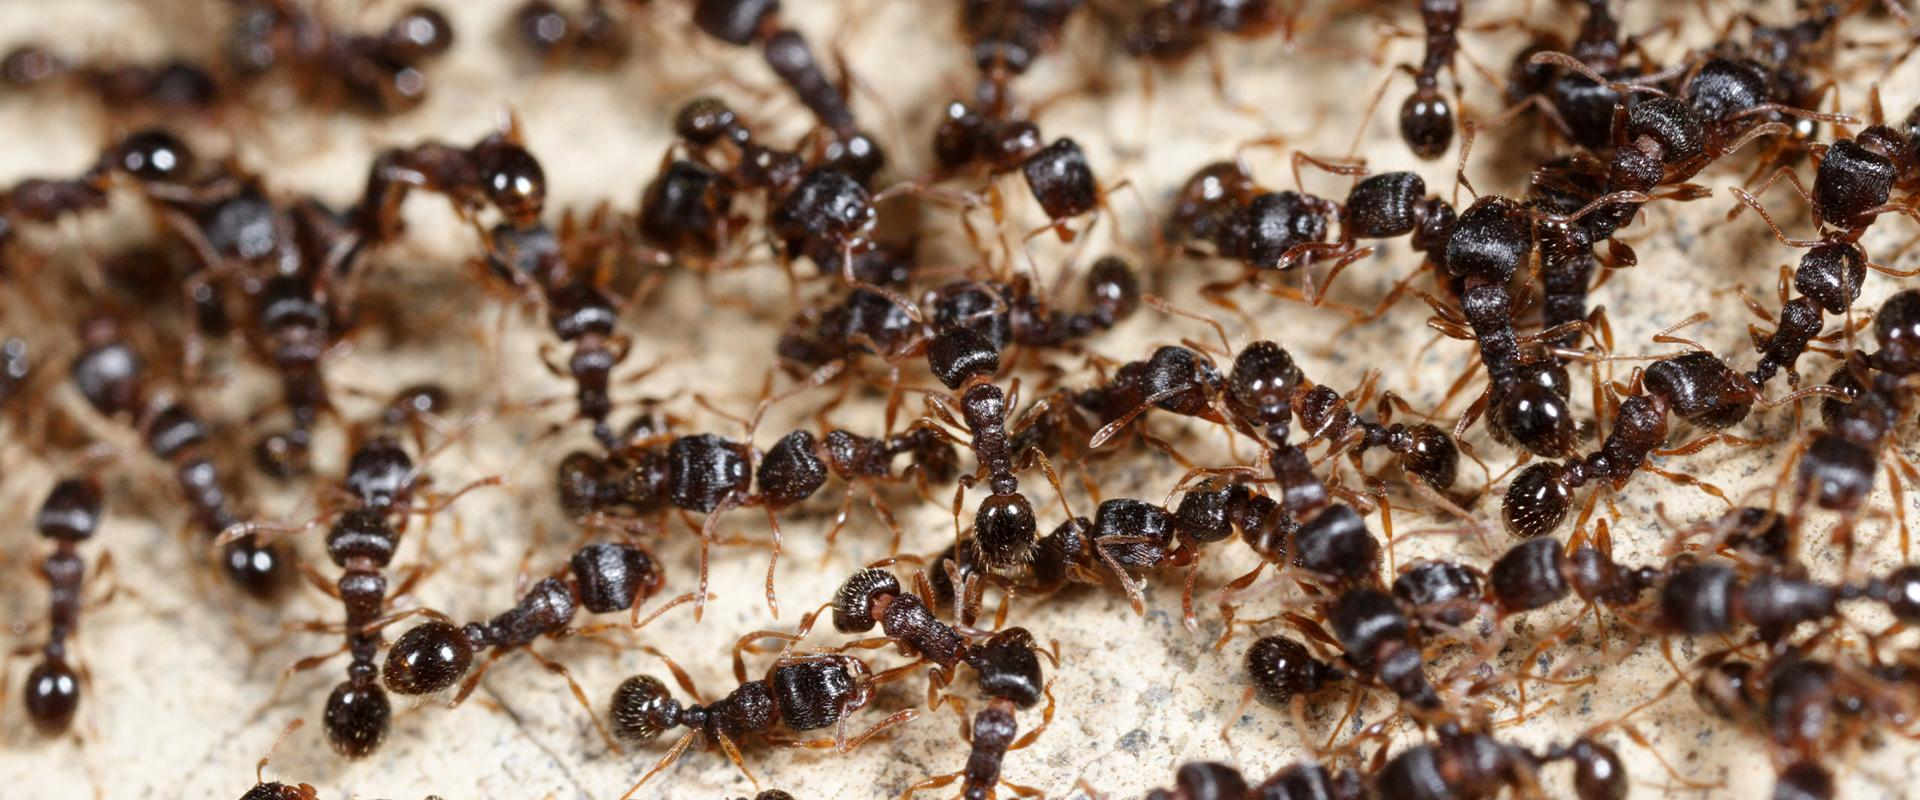 close up of black ants